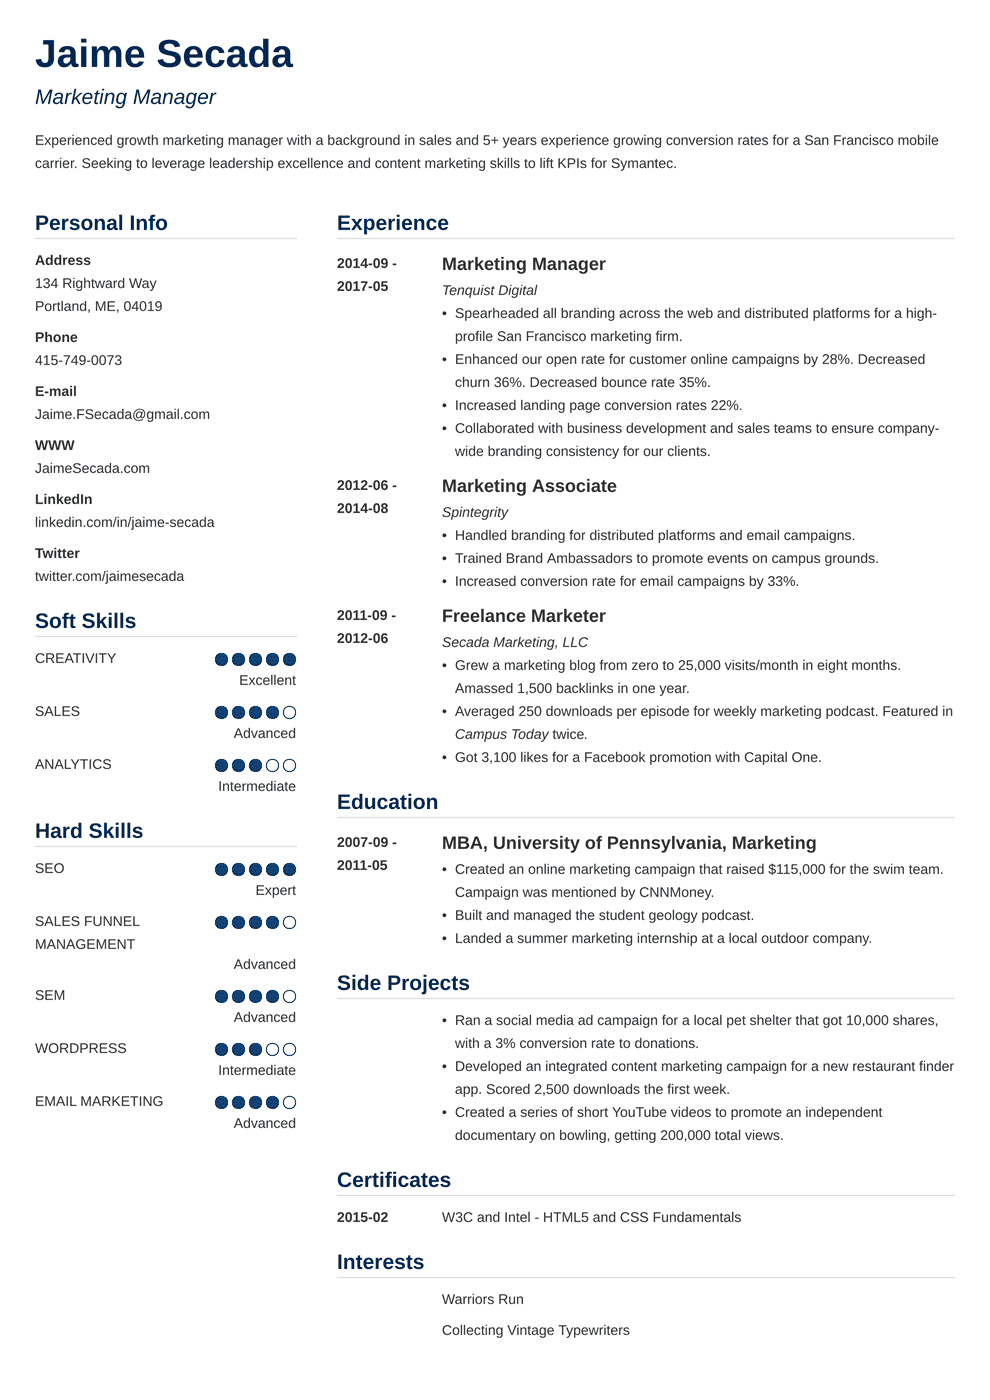 Marketing Manager Resume: Sample & Writing Guide (20+ Examples)